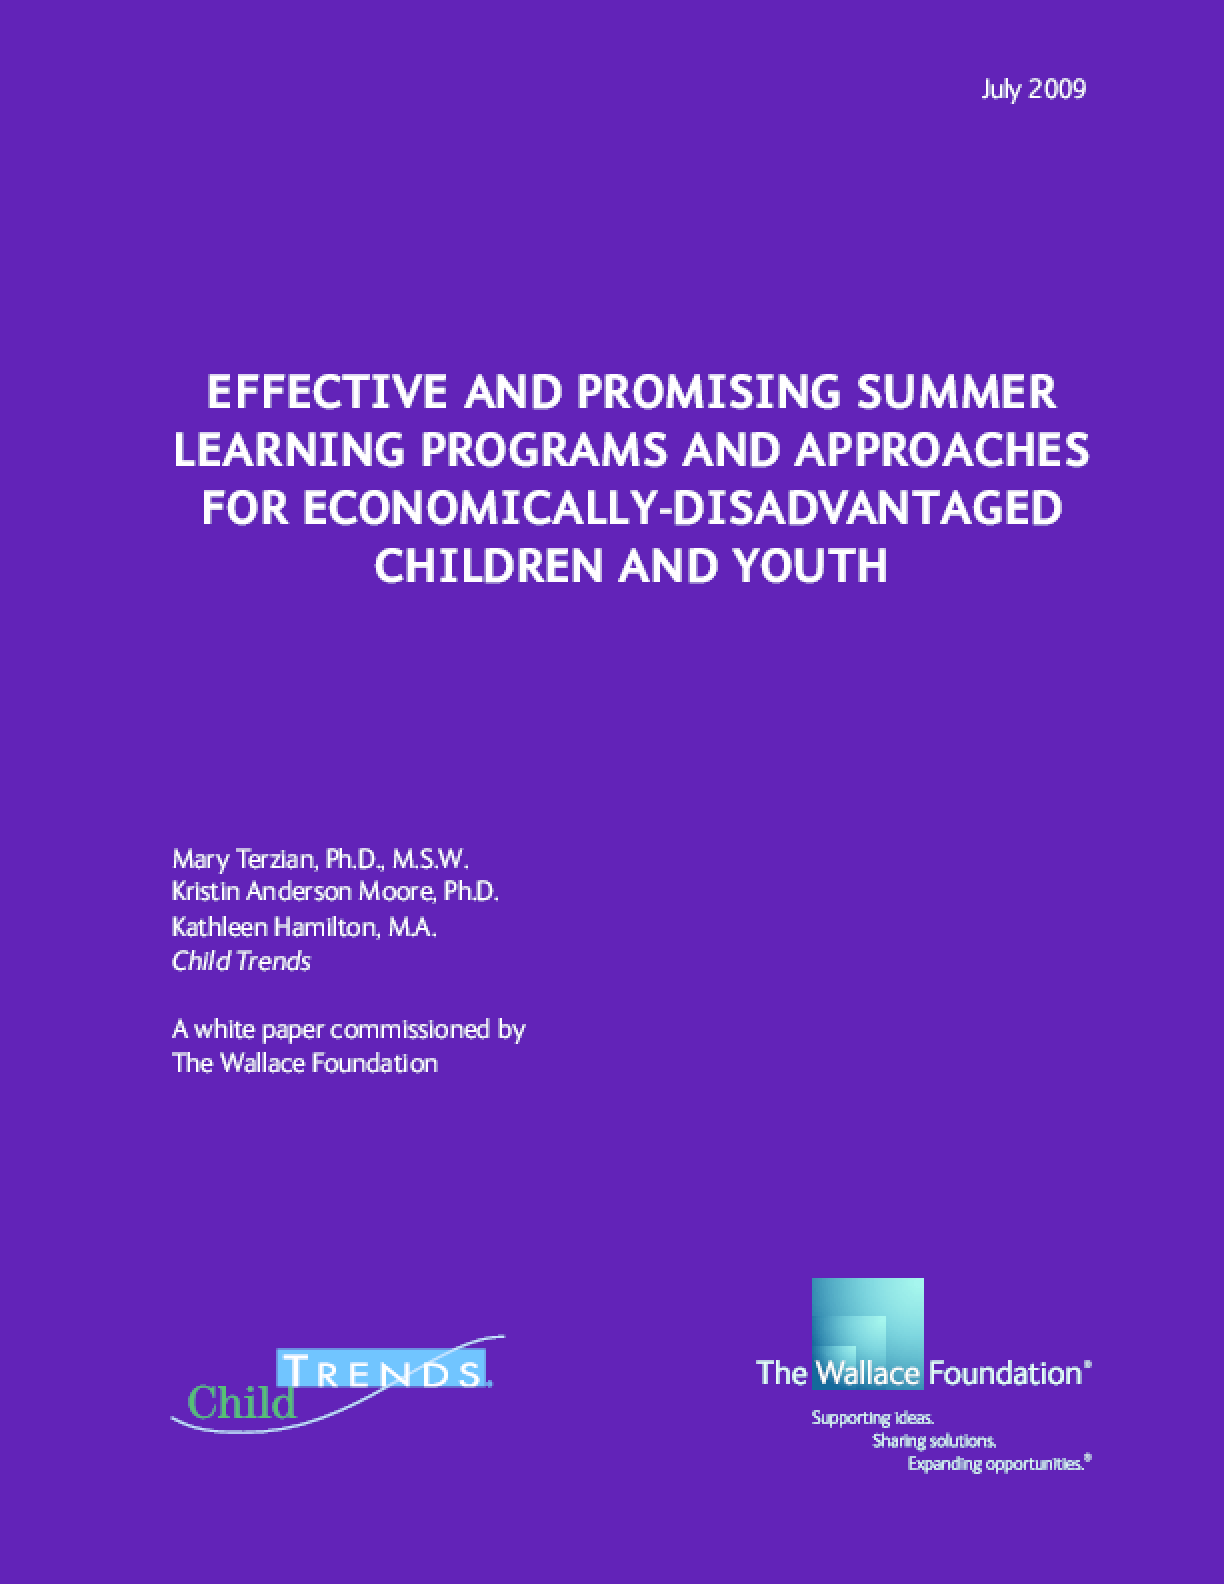 Effective and Promising Summer Learning Programs and Approaches for Economically-Disadvantaged Children and Youth